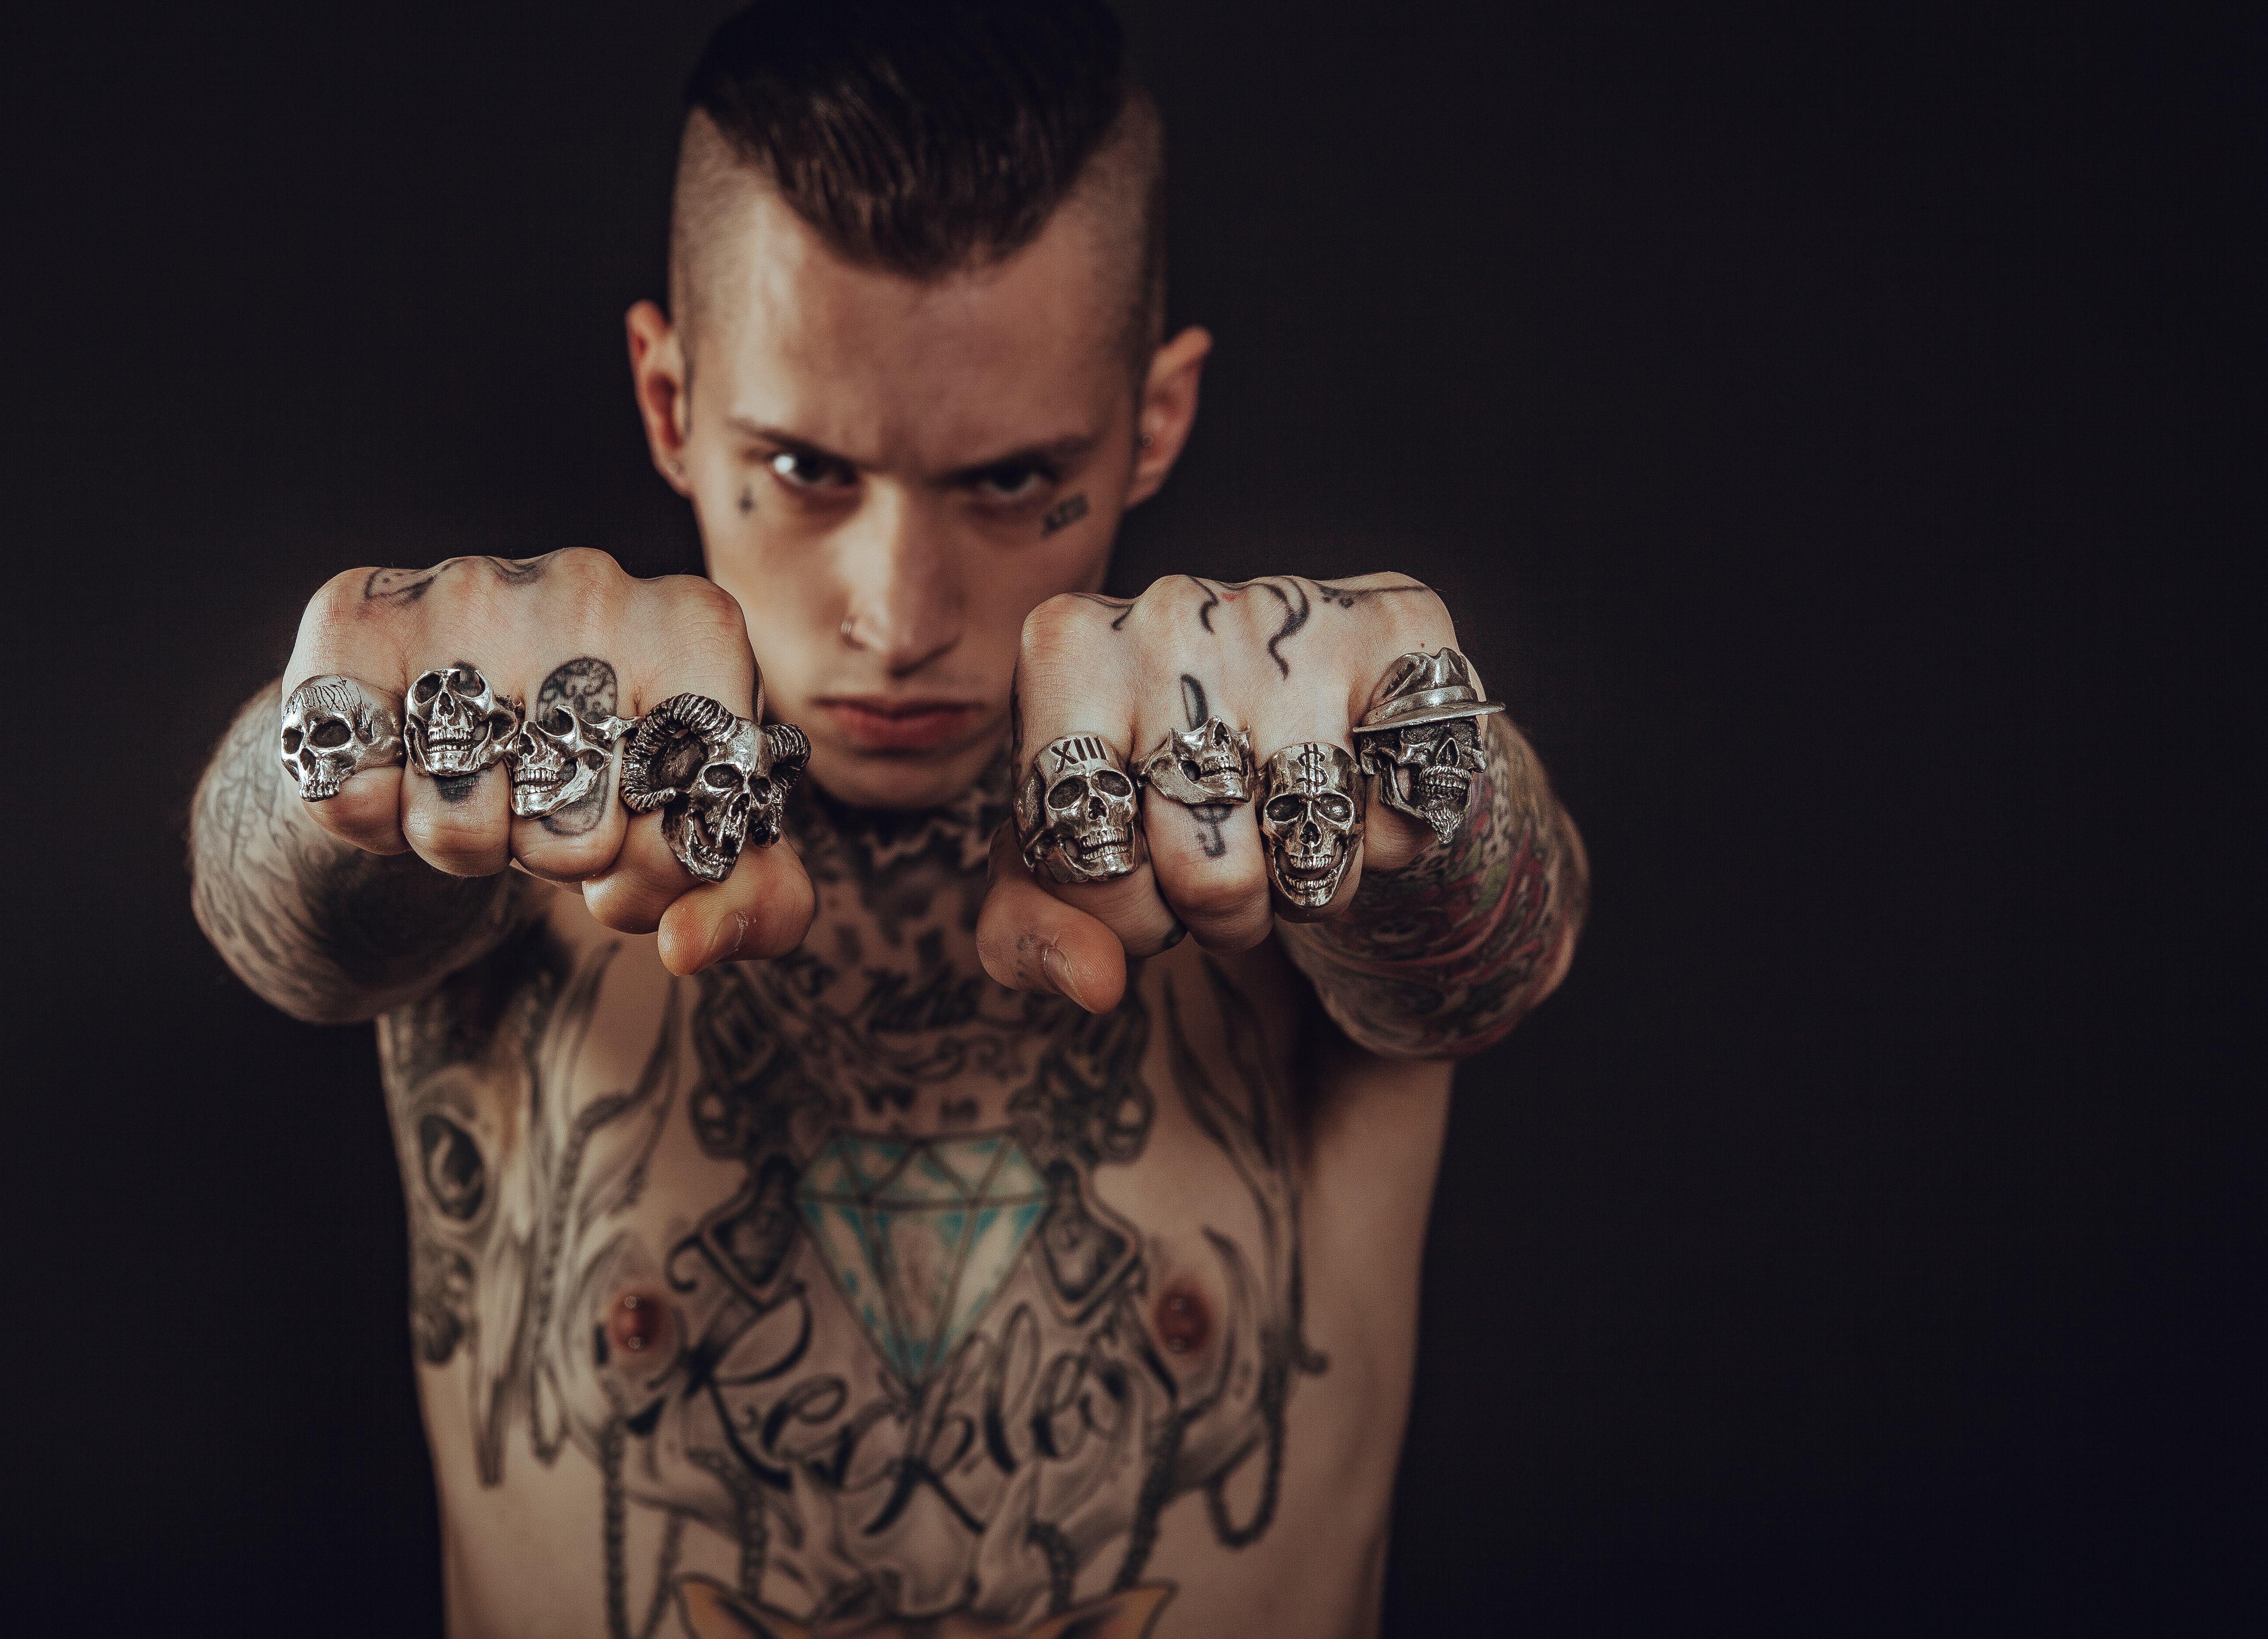 A shirtless man with tattoos on his body and rings on his fingers having a punk haircut in London